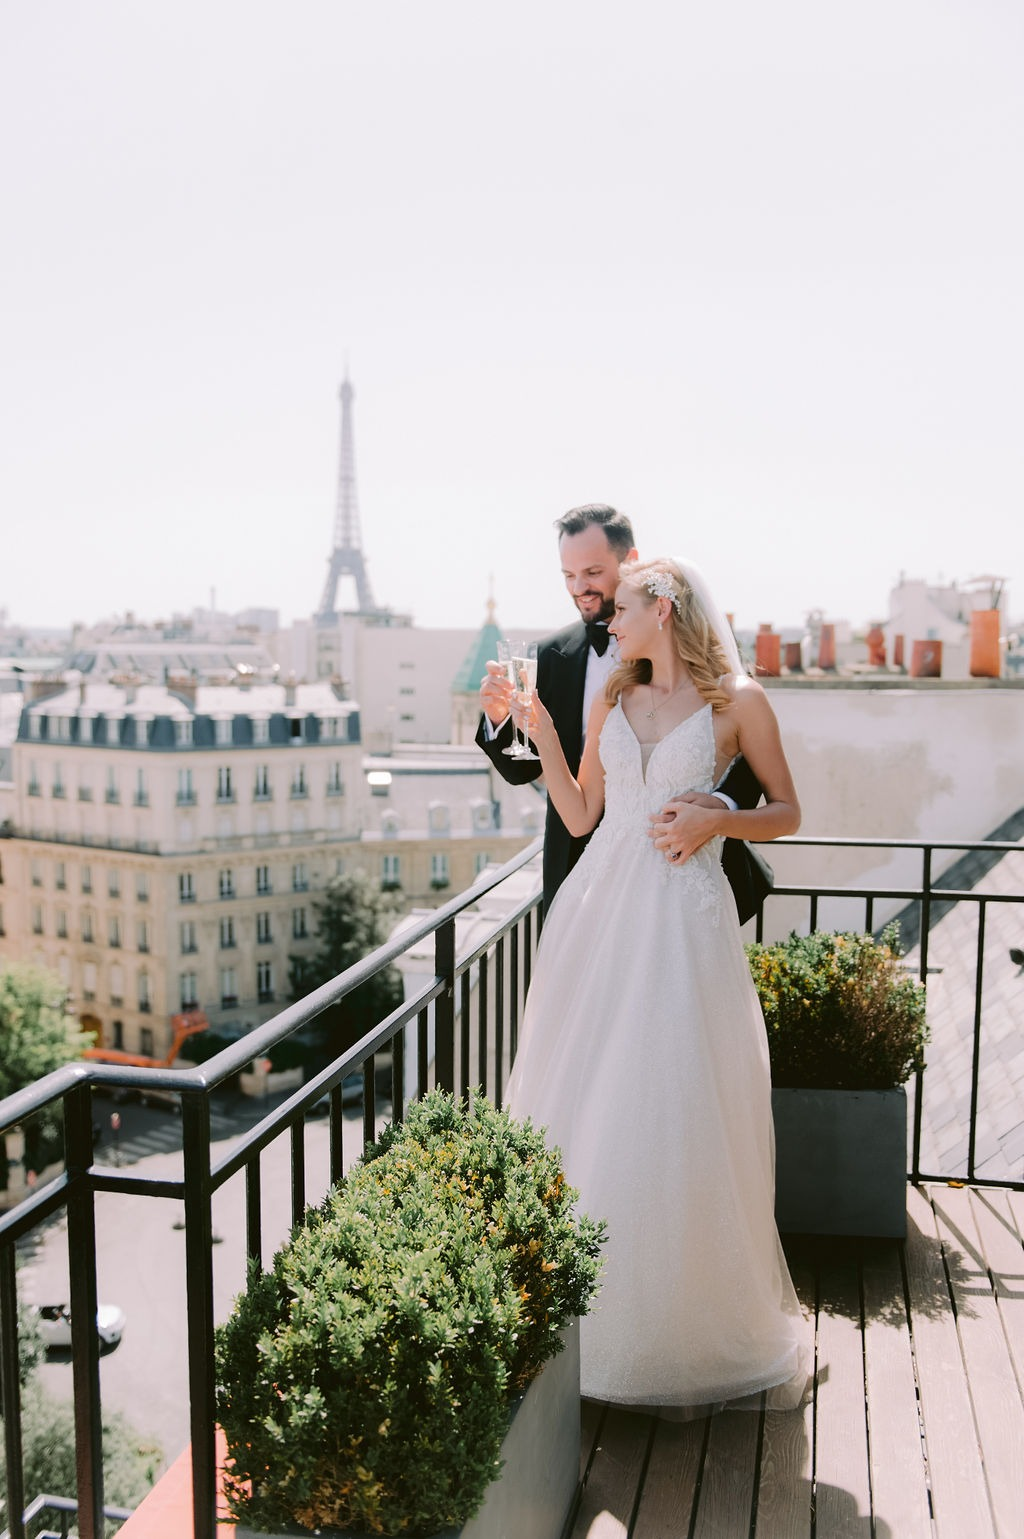 From Australia to Paris to say I do!